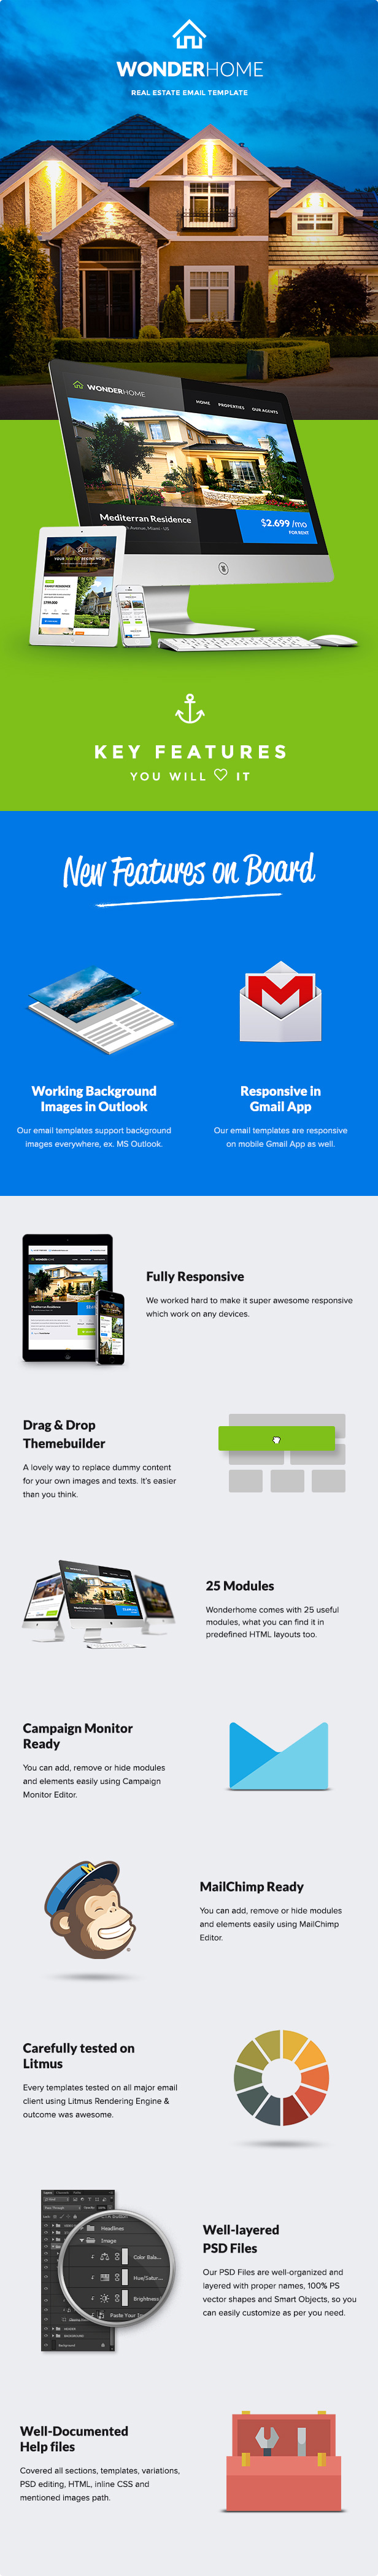 WonderHome - Real Estate E-newsletter Template